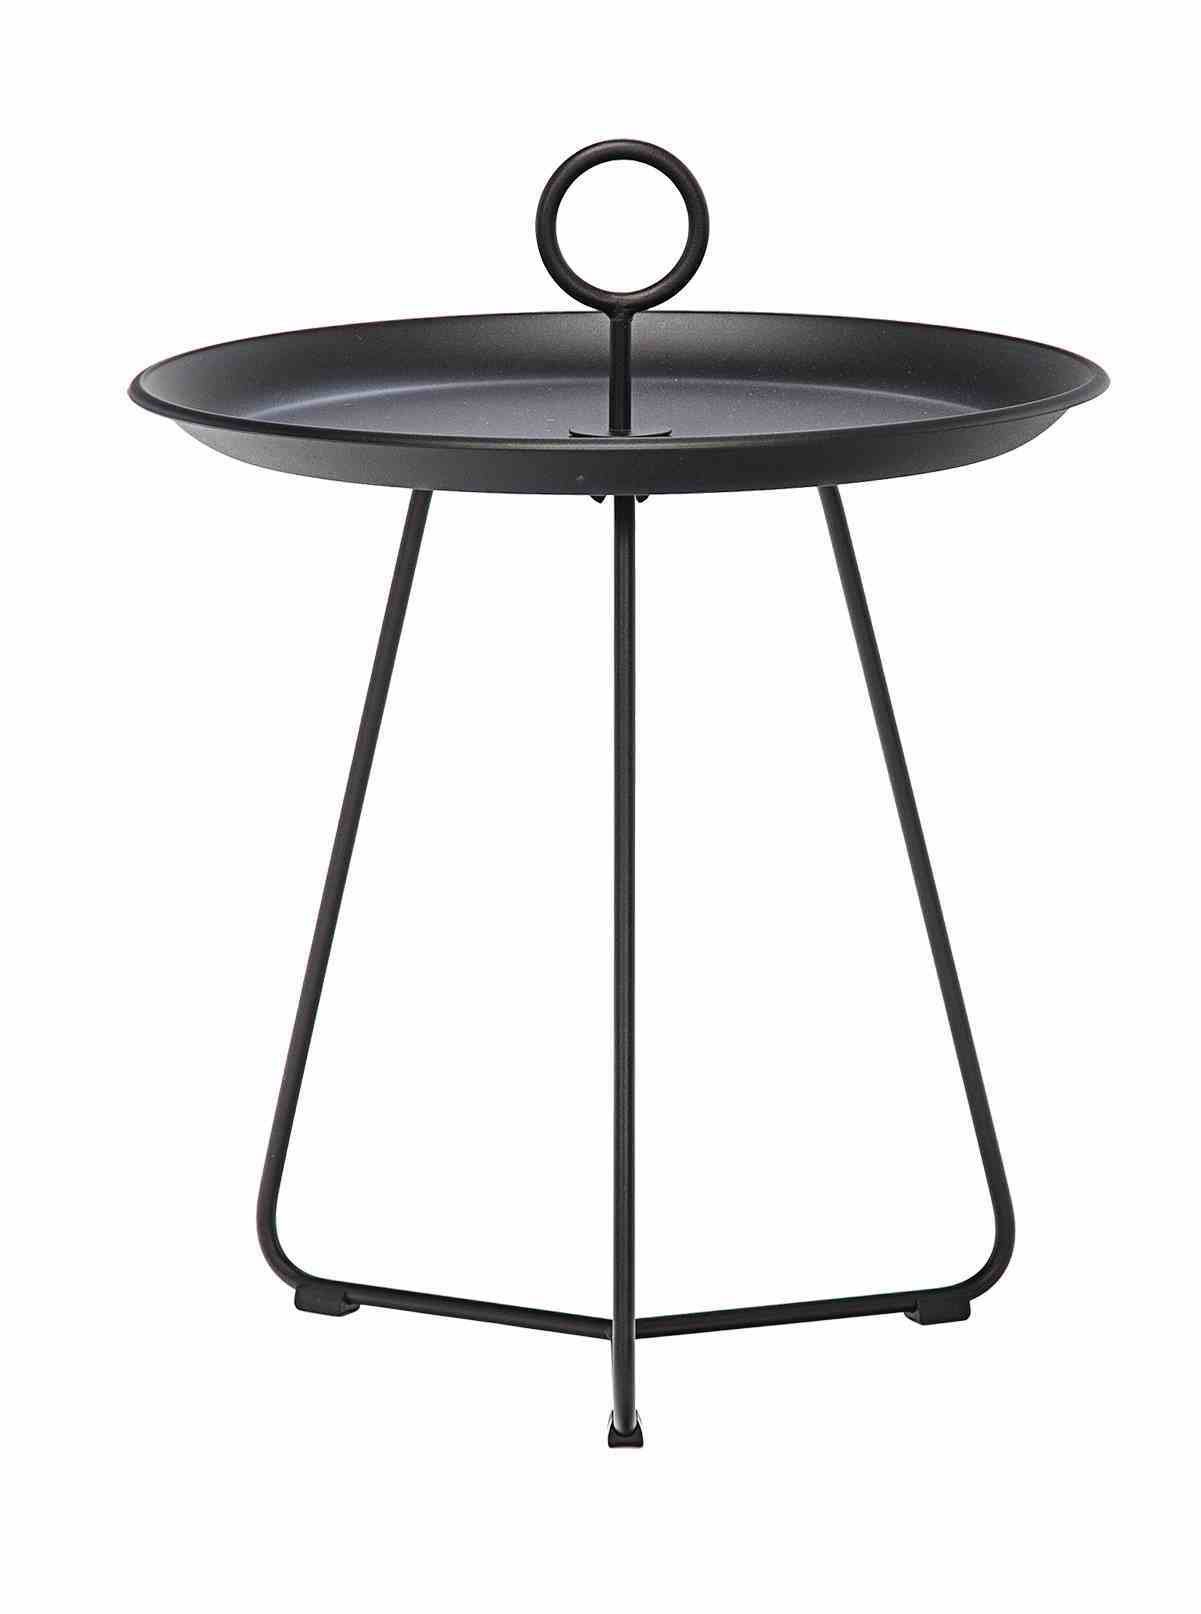 eyelet outdoor side table small houe beistelltisch klein schwarz accent corner nightstand target black bedroom end lamps round entryway metal patio with umbrella hole off white